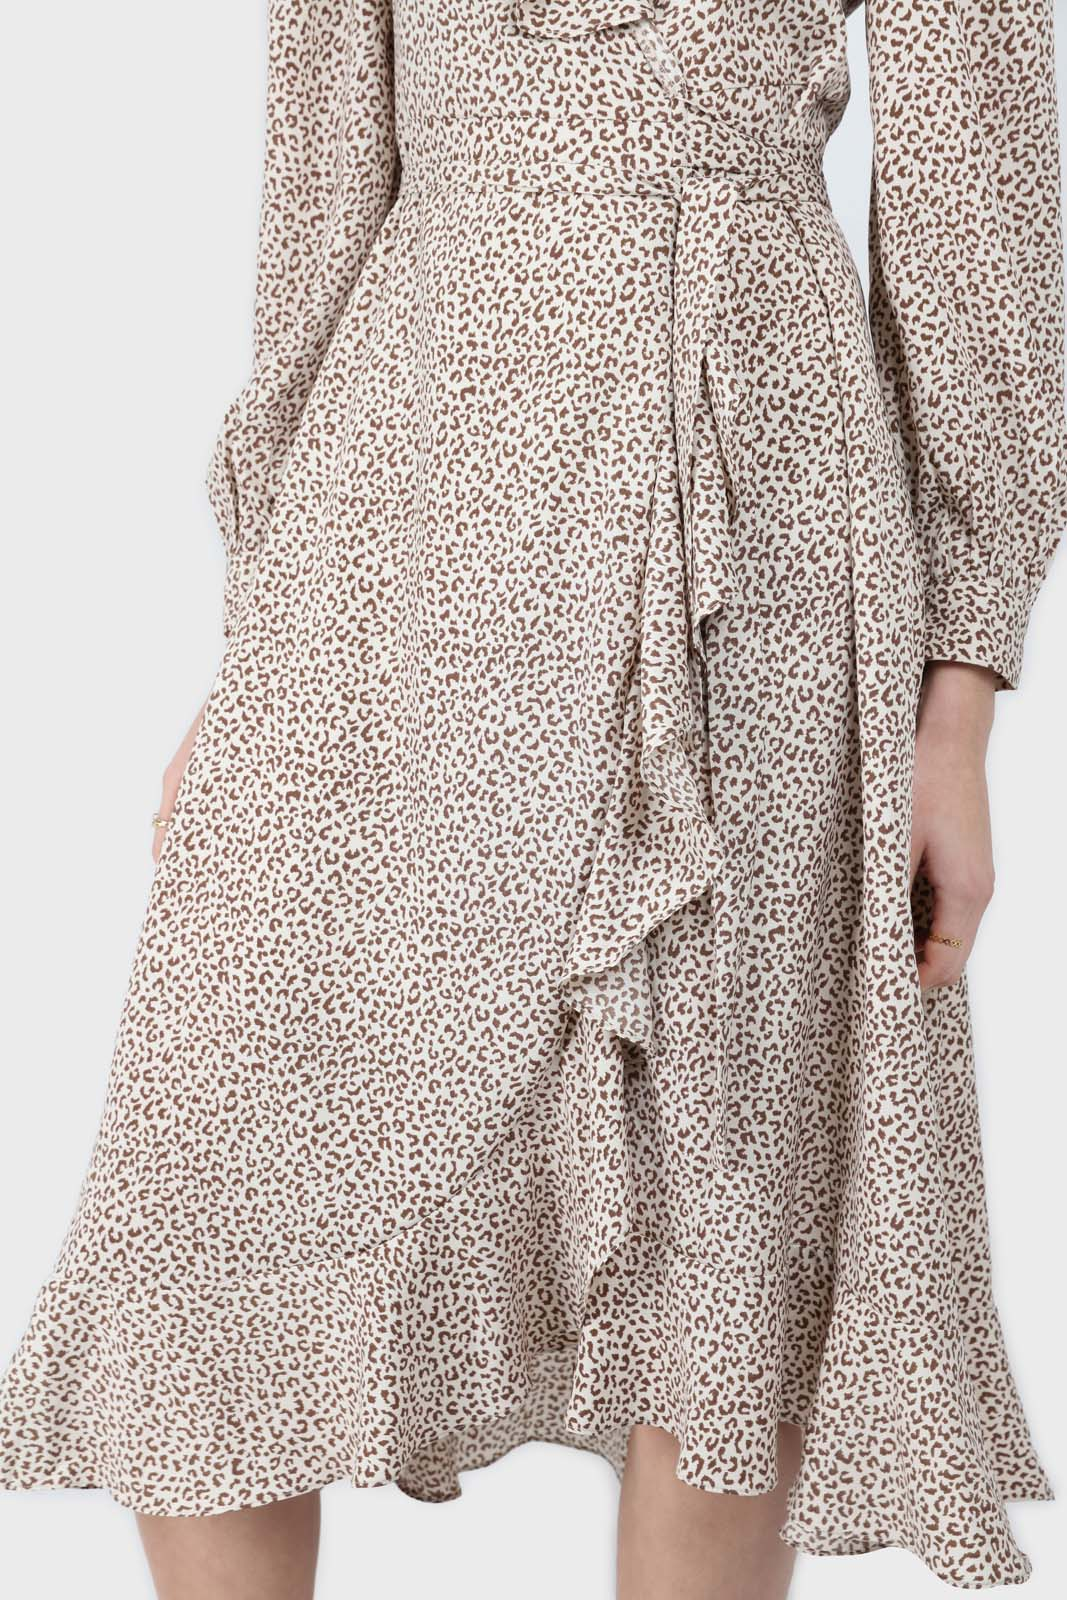 Ivory and brown animal print ruffle trim wrap dress2